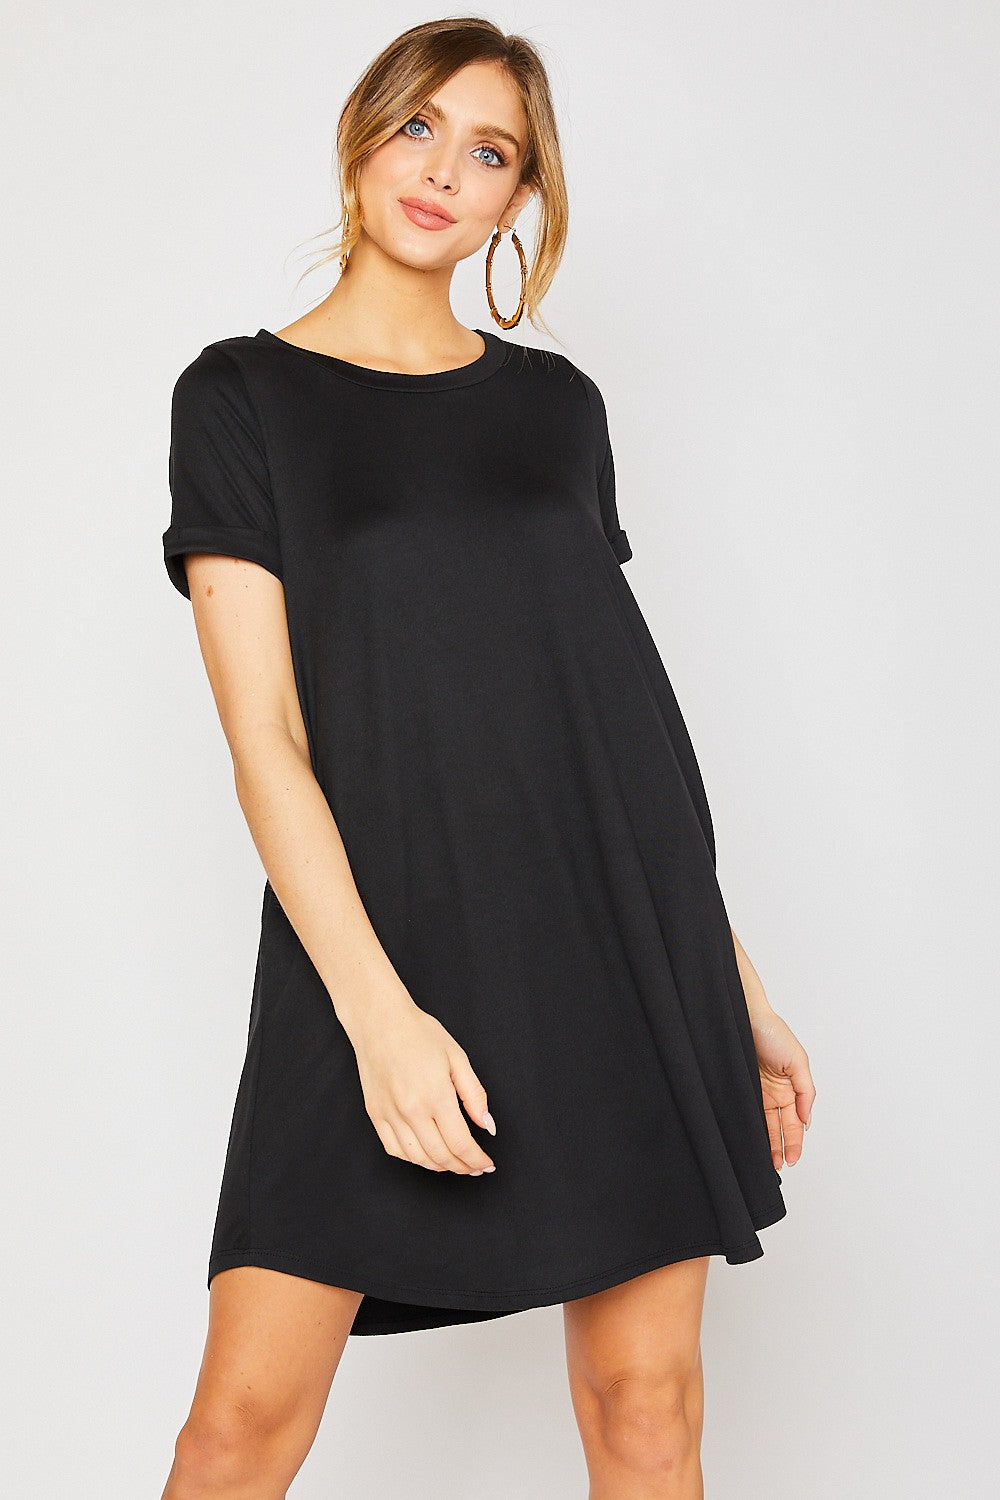 Round Neck Short Sleeve Dress